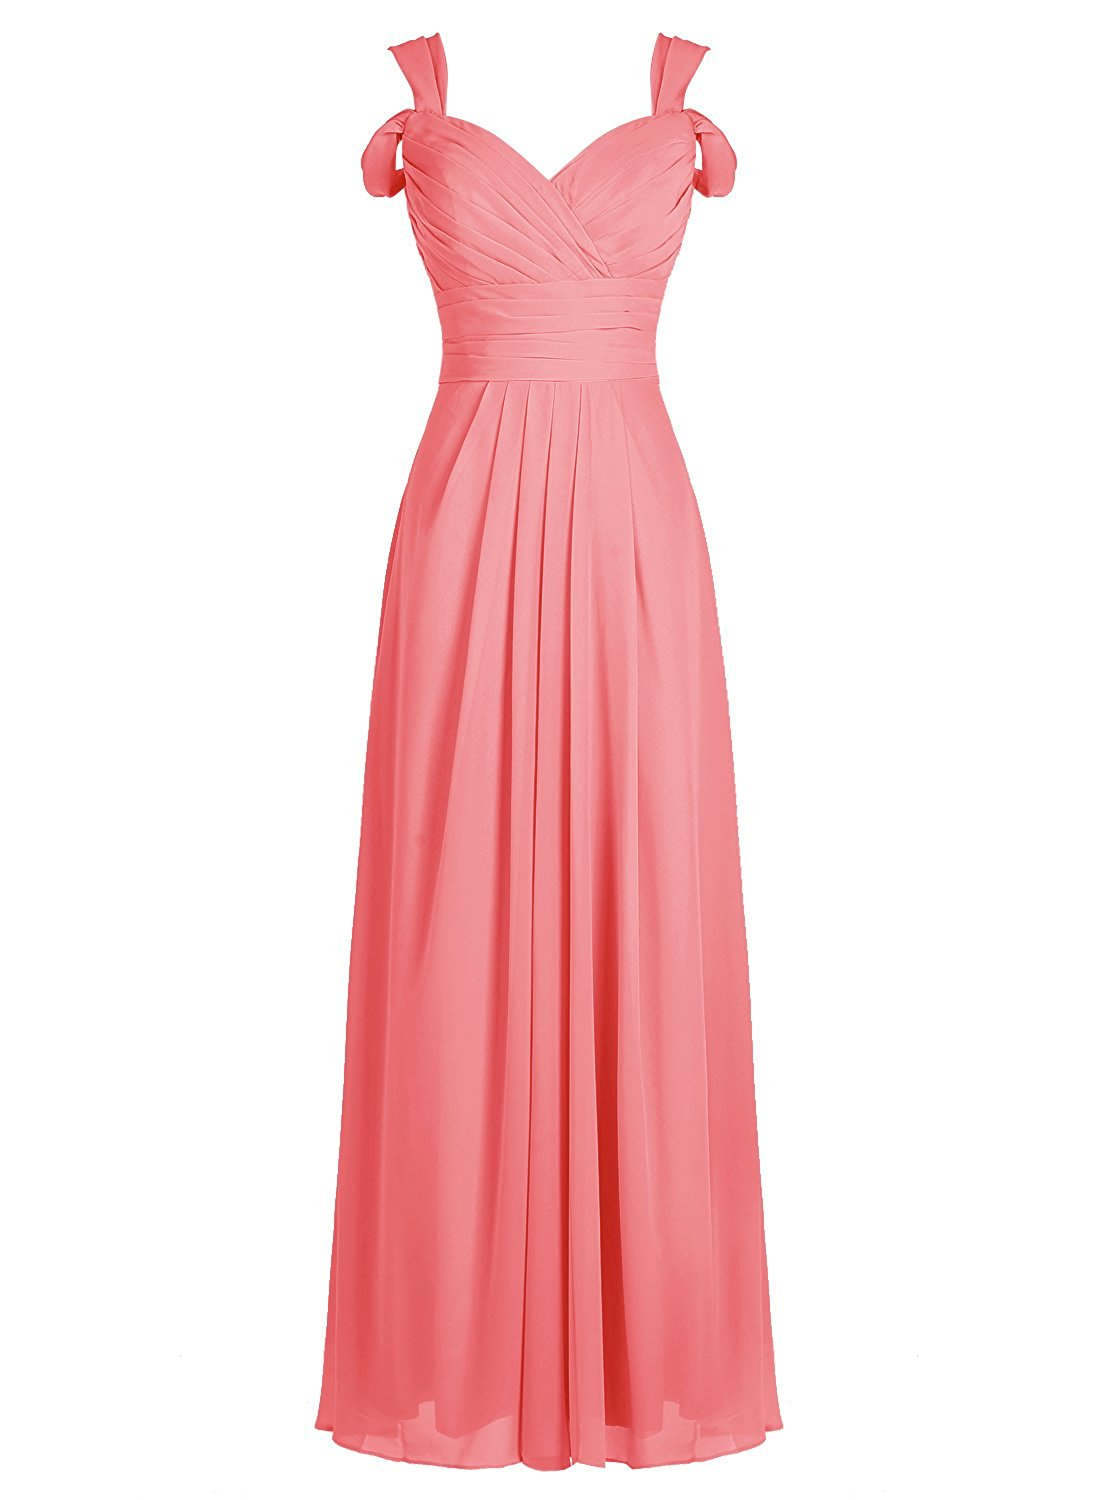 92fbbeb70c4 Affordable Coral Peach Bridesmaid Dresses UK Company FREE Delivery